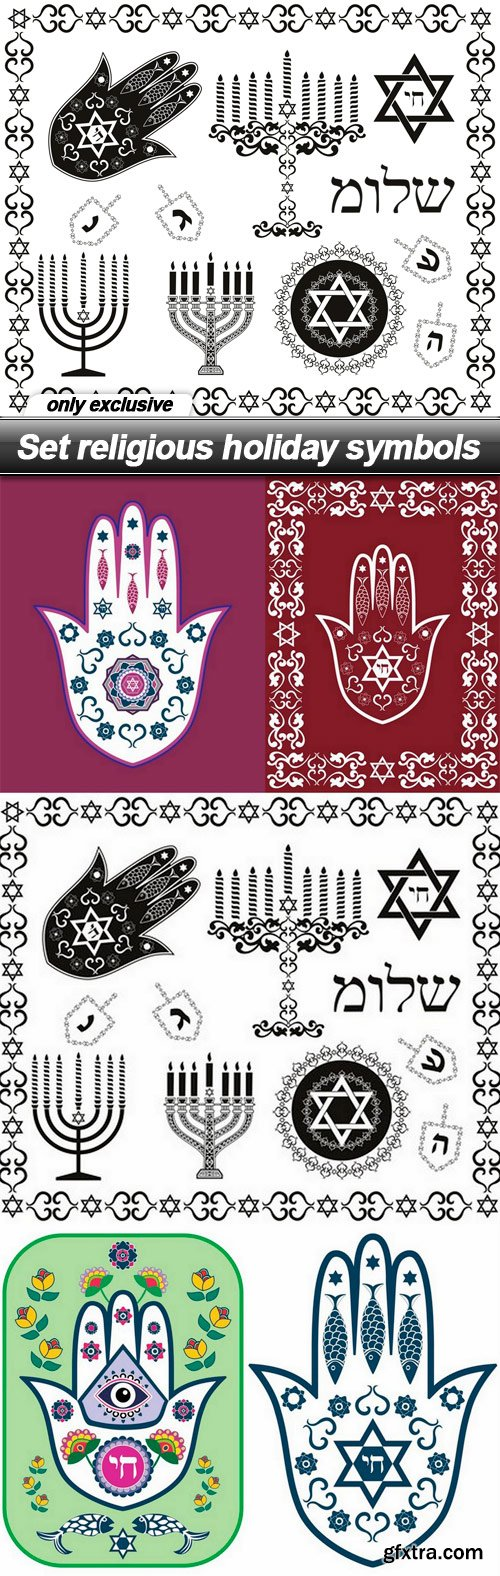 Set religious holiday symbols - 5 UHQ JPEG